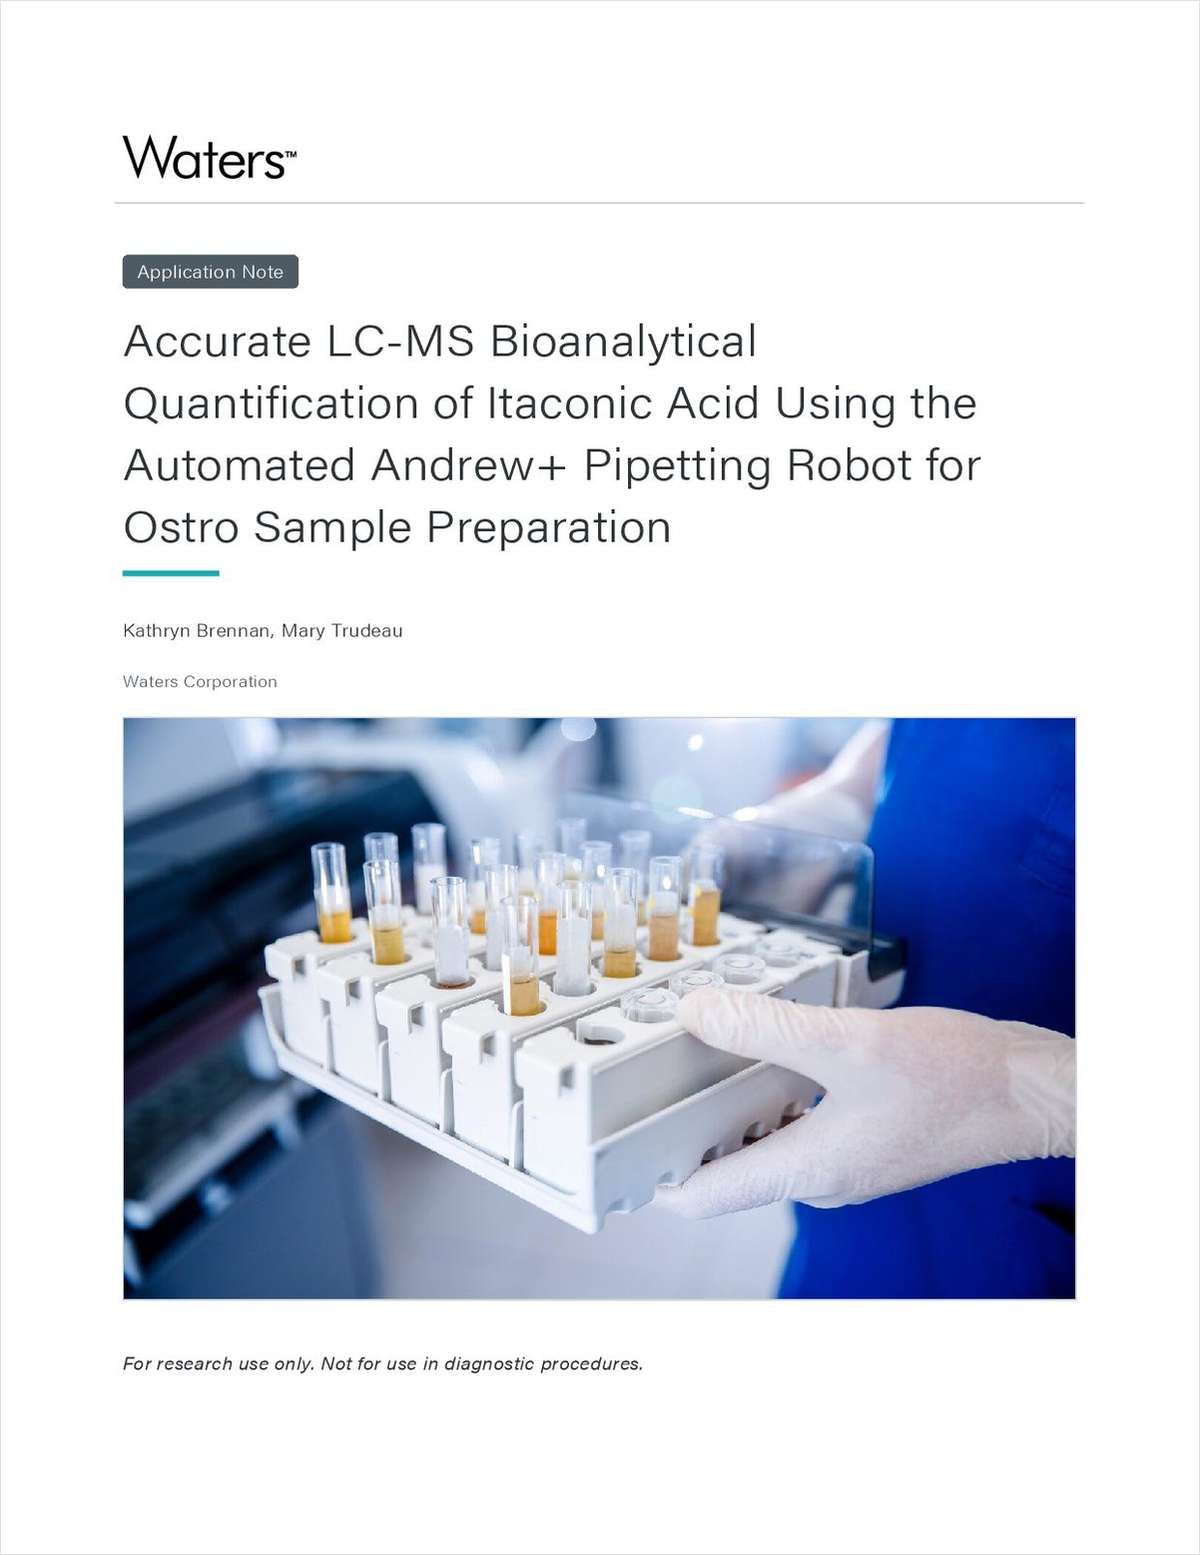 Accurate LC-MS Bioanalytical Quantification of Itaconic Acid Using the Automated Andrew+ Pipetting Robot for Ostro Sample Preparation